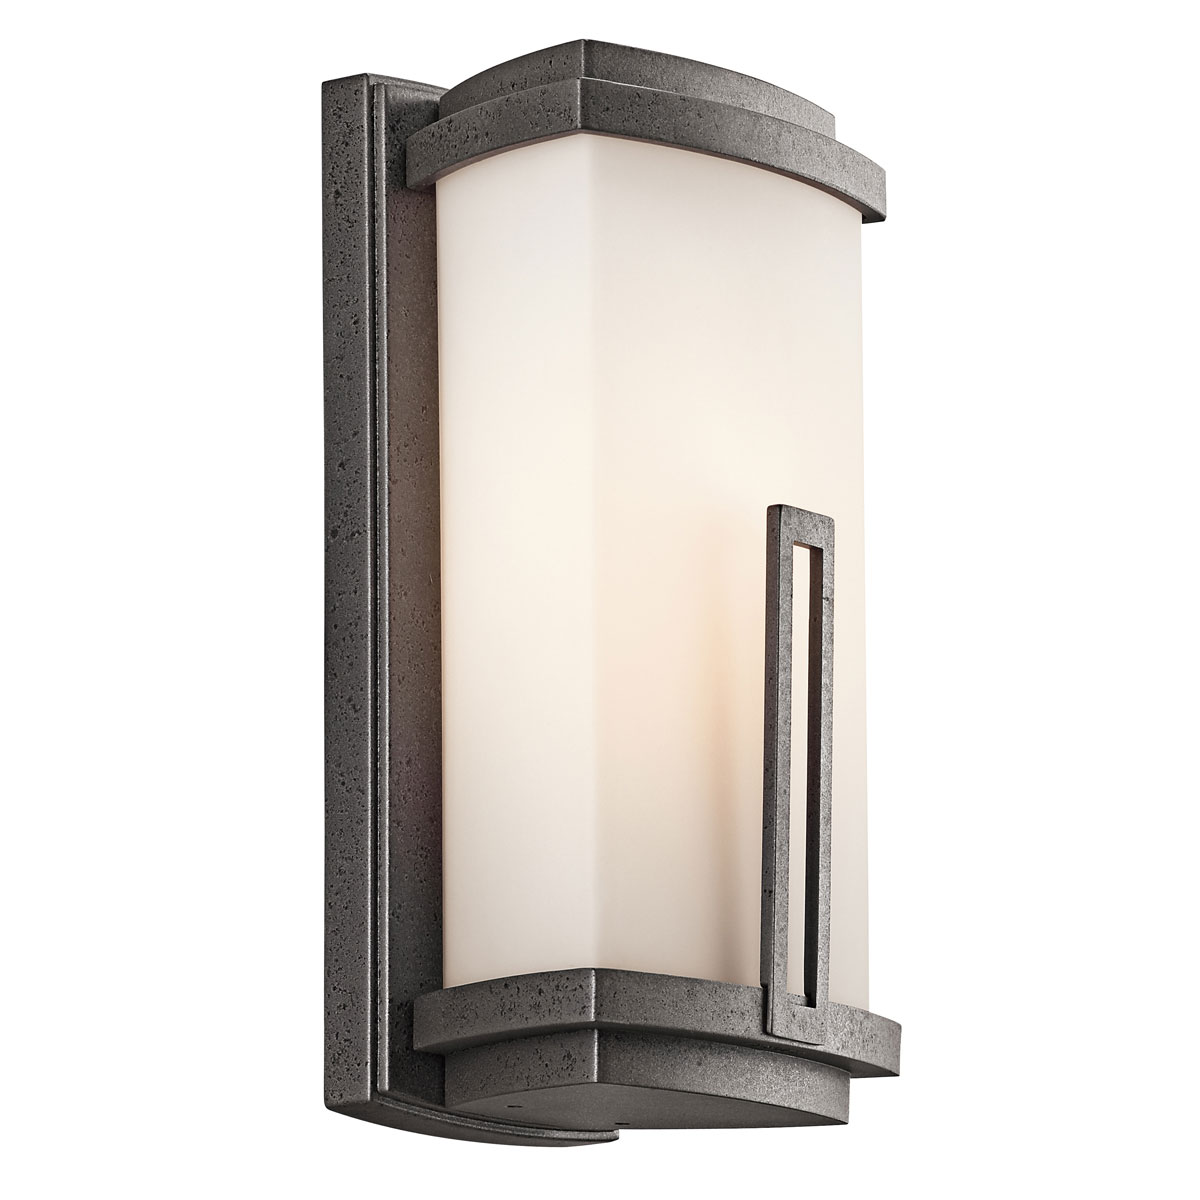 Leeds Outdoor Wall Sconce By Kichler